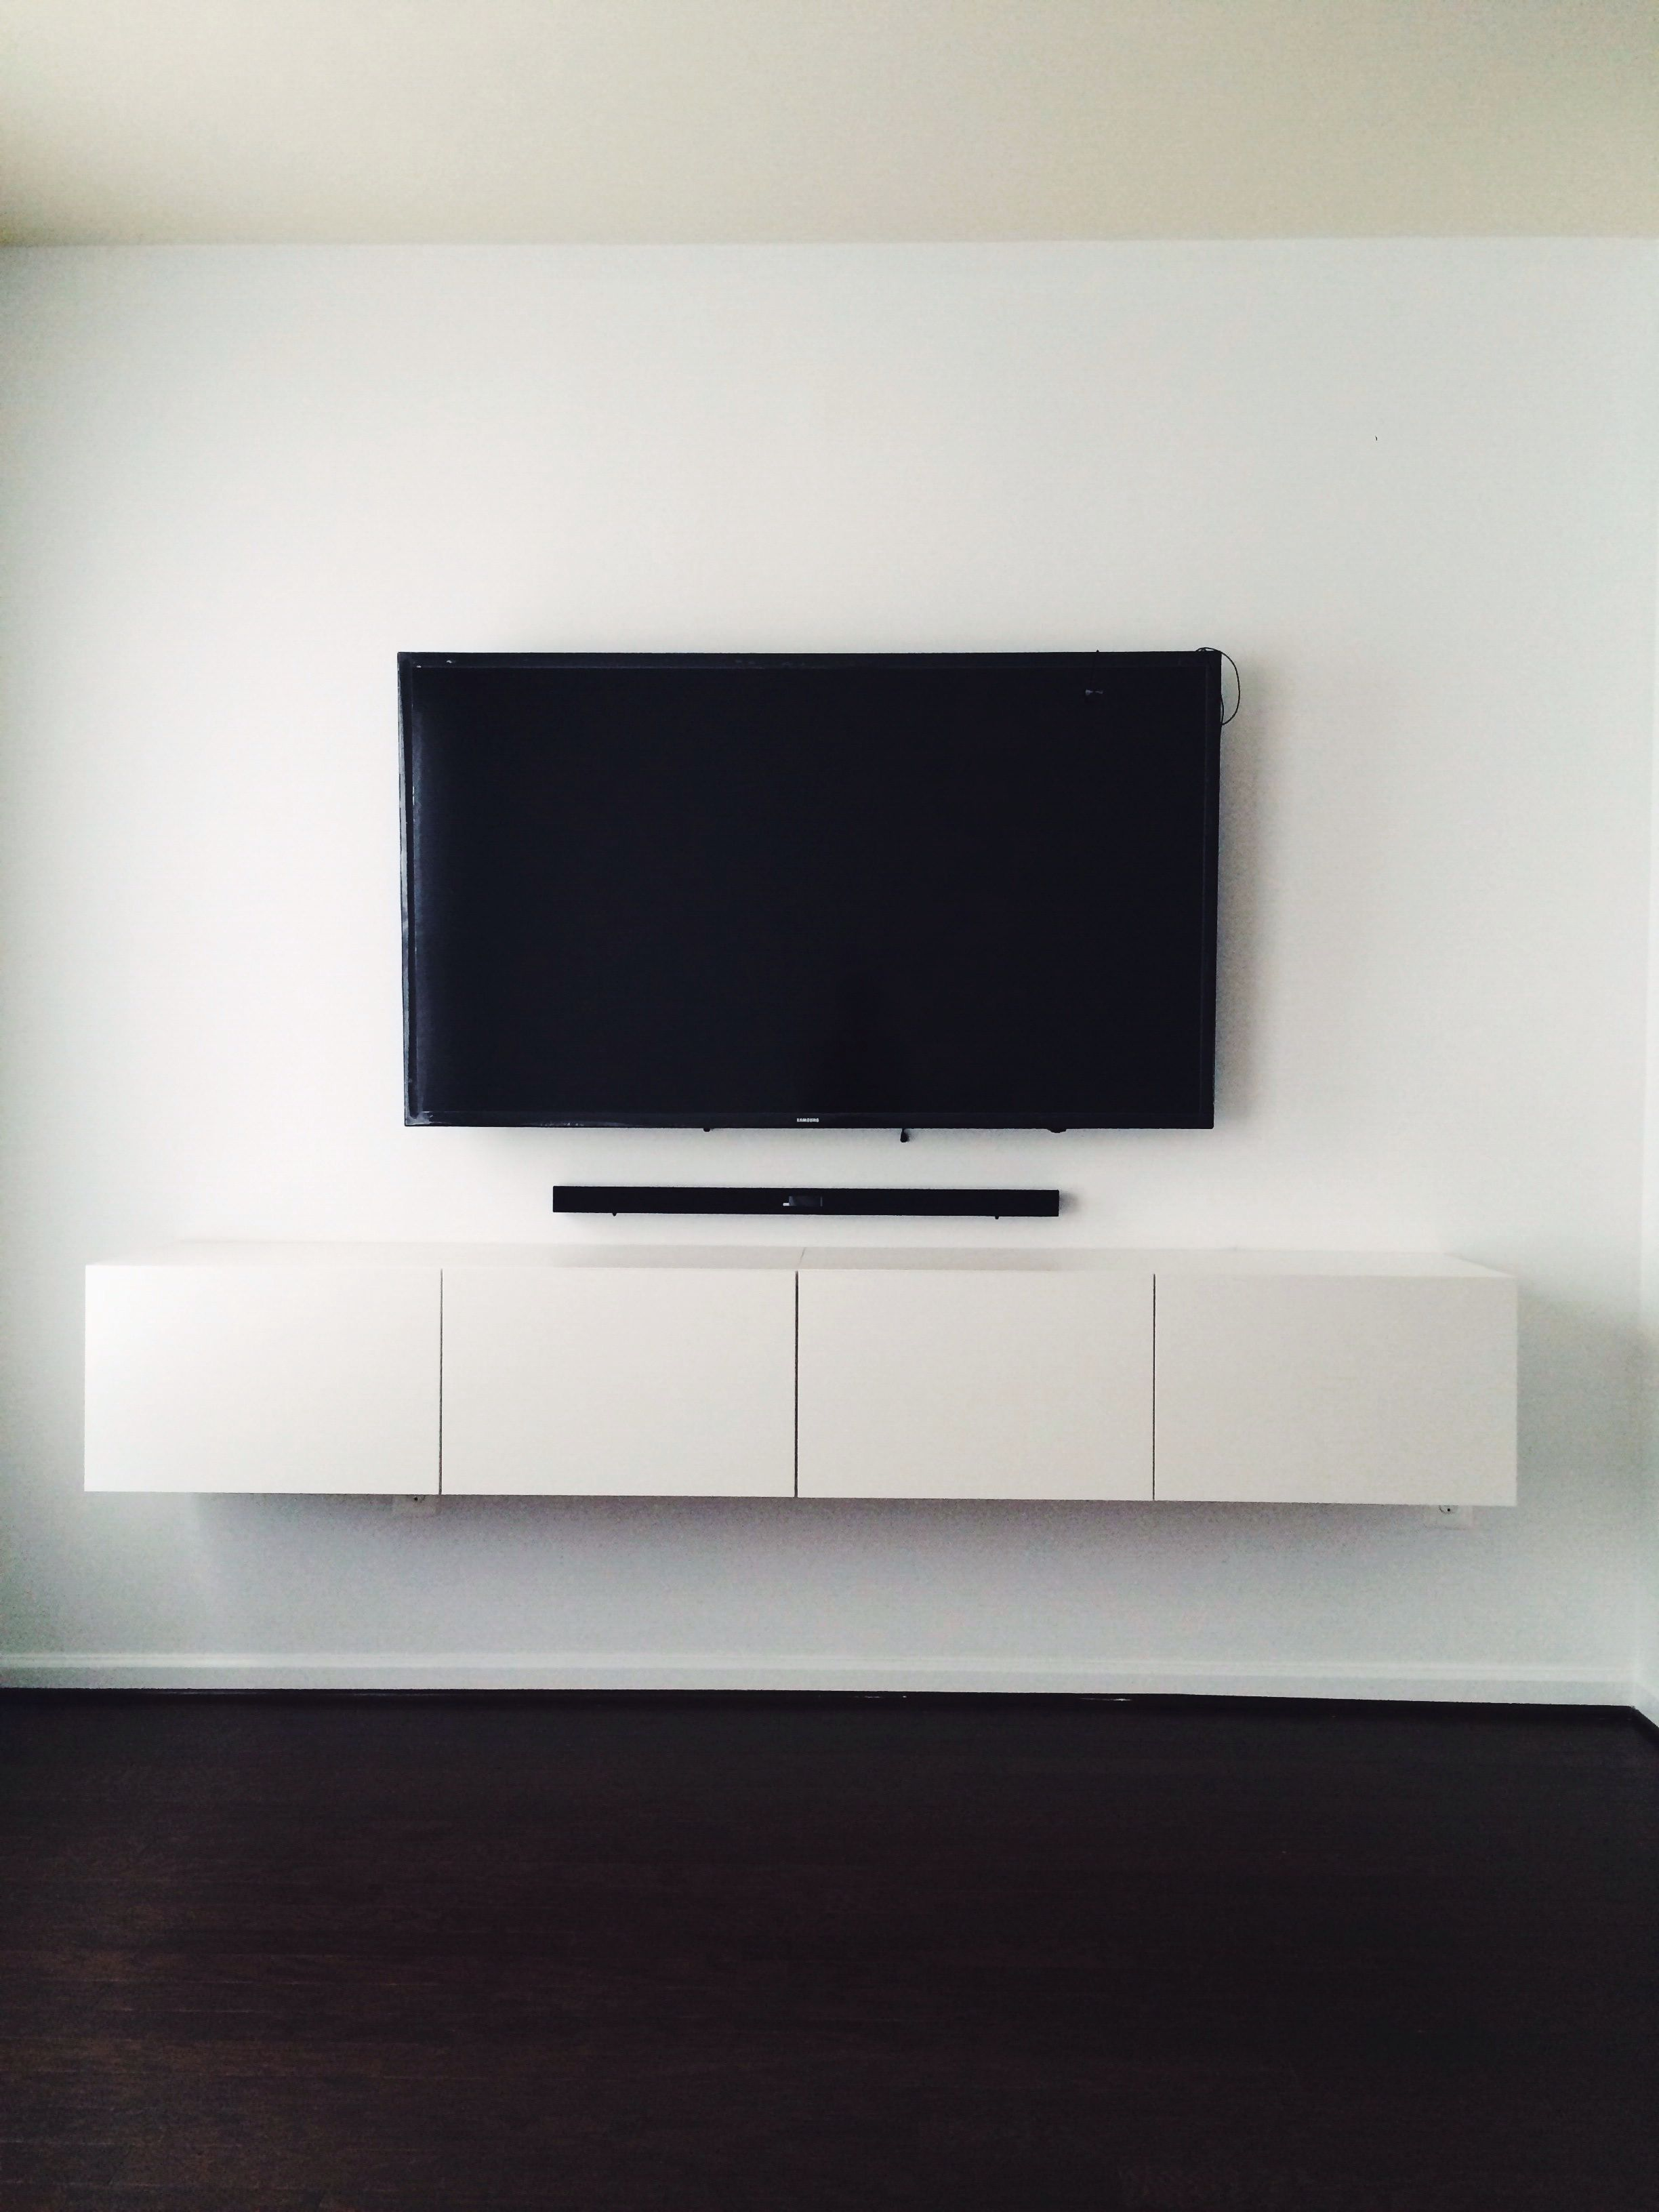 Tv board ikea holz  IKEA BESTÅ media console. Mounted tv with hidden wires. Now that's ...